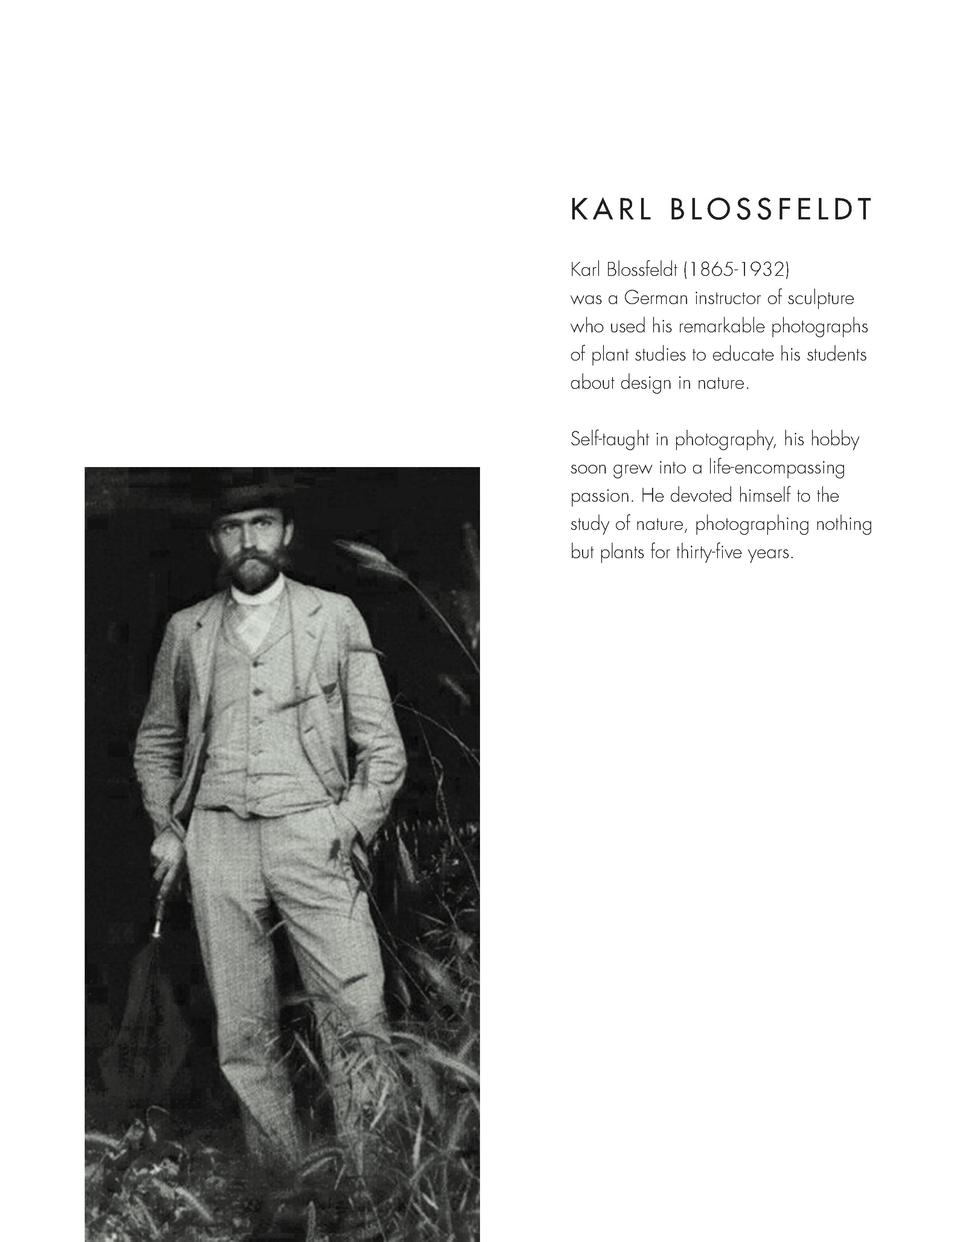 KARL BLOSSFELDT Karl Blossfeldt  1865-1932  was a German instructor of sculpture who used his remarkable photographs of pl...